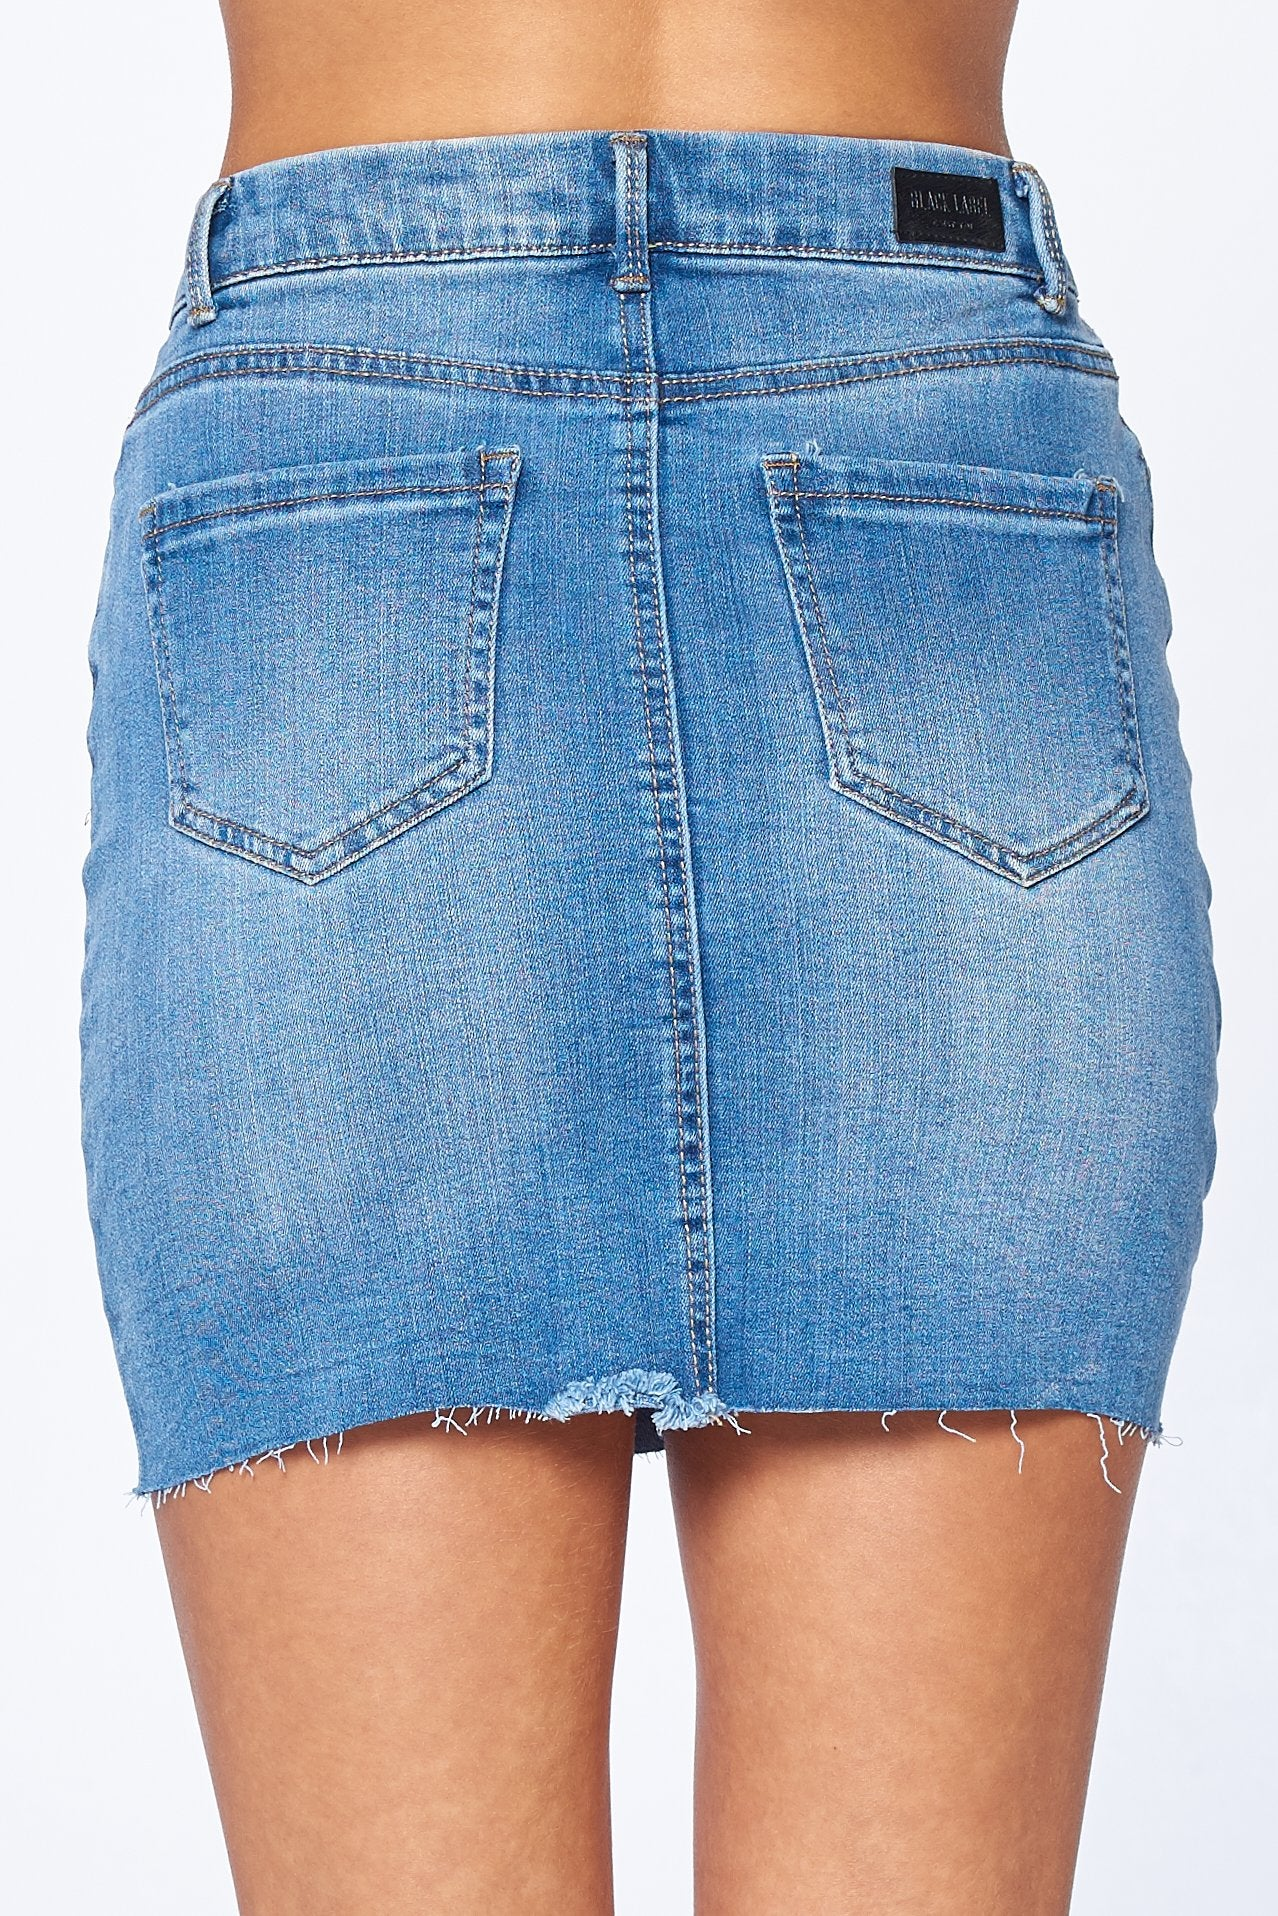 Khanomak Women's High Waist 5 Pocket Classic Raw Cut Hem Denim Mini Skirt